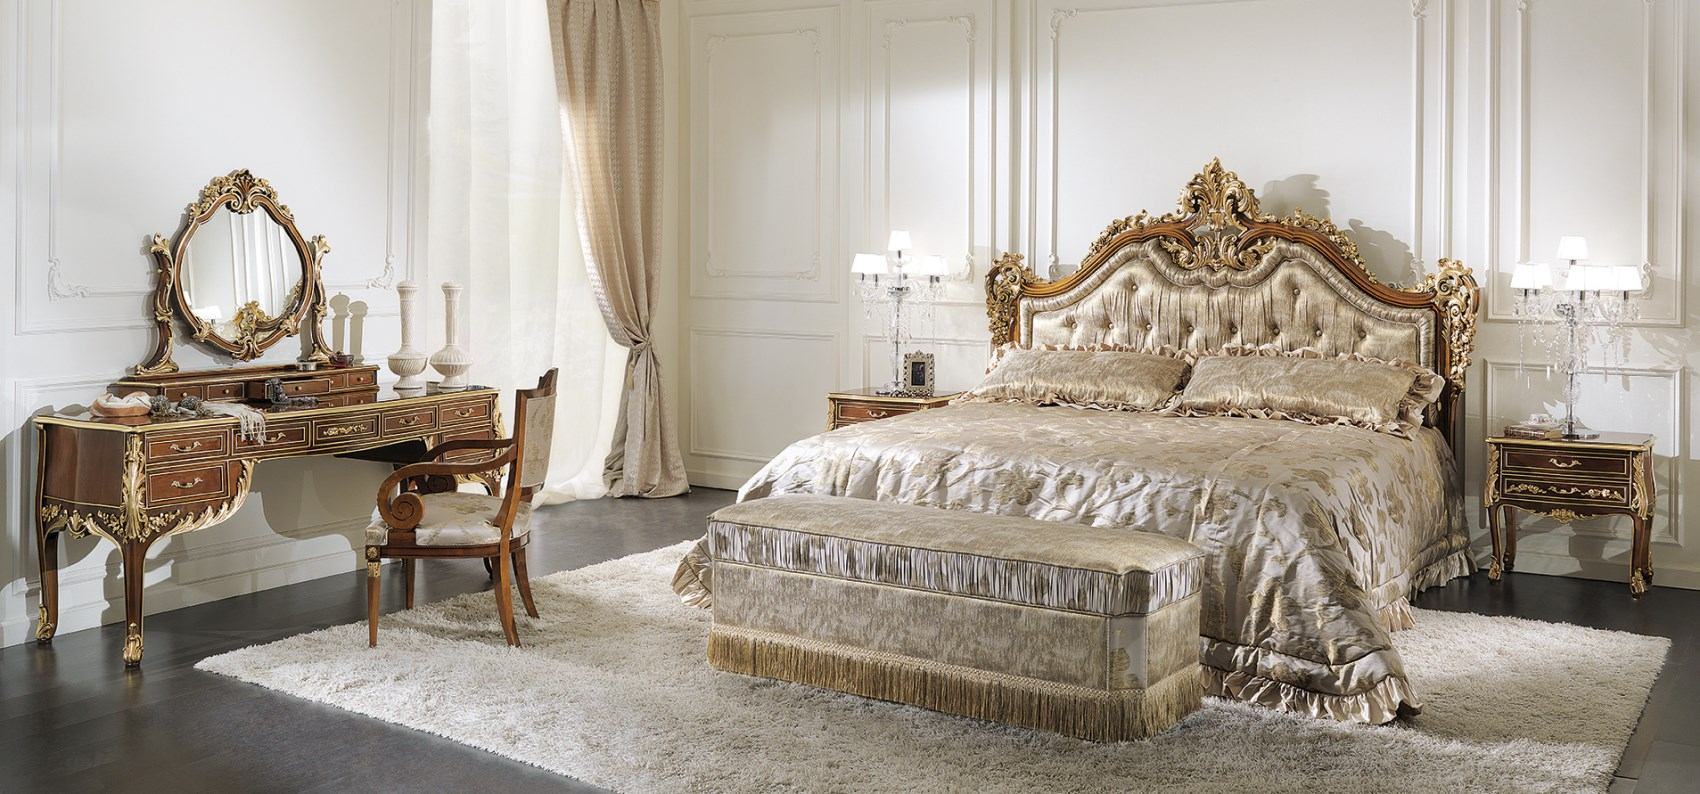 2857 bed, 2860 night stand, 2861 bench, 2857c bedcover, 2858 toeletta, 2859 dresser, 113 small armchair (1700 x 794)